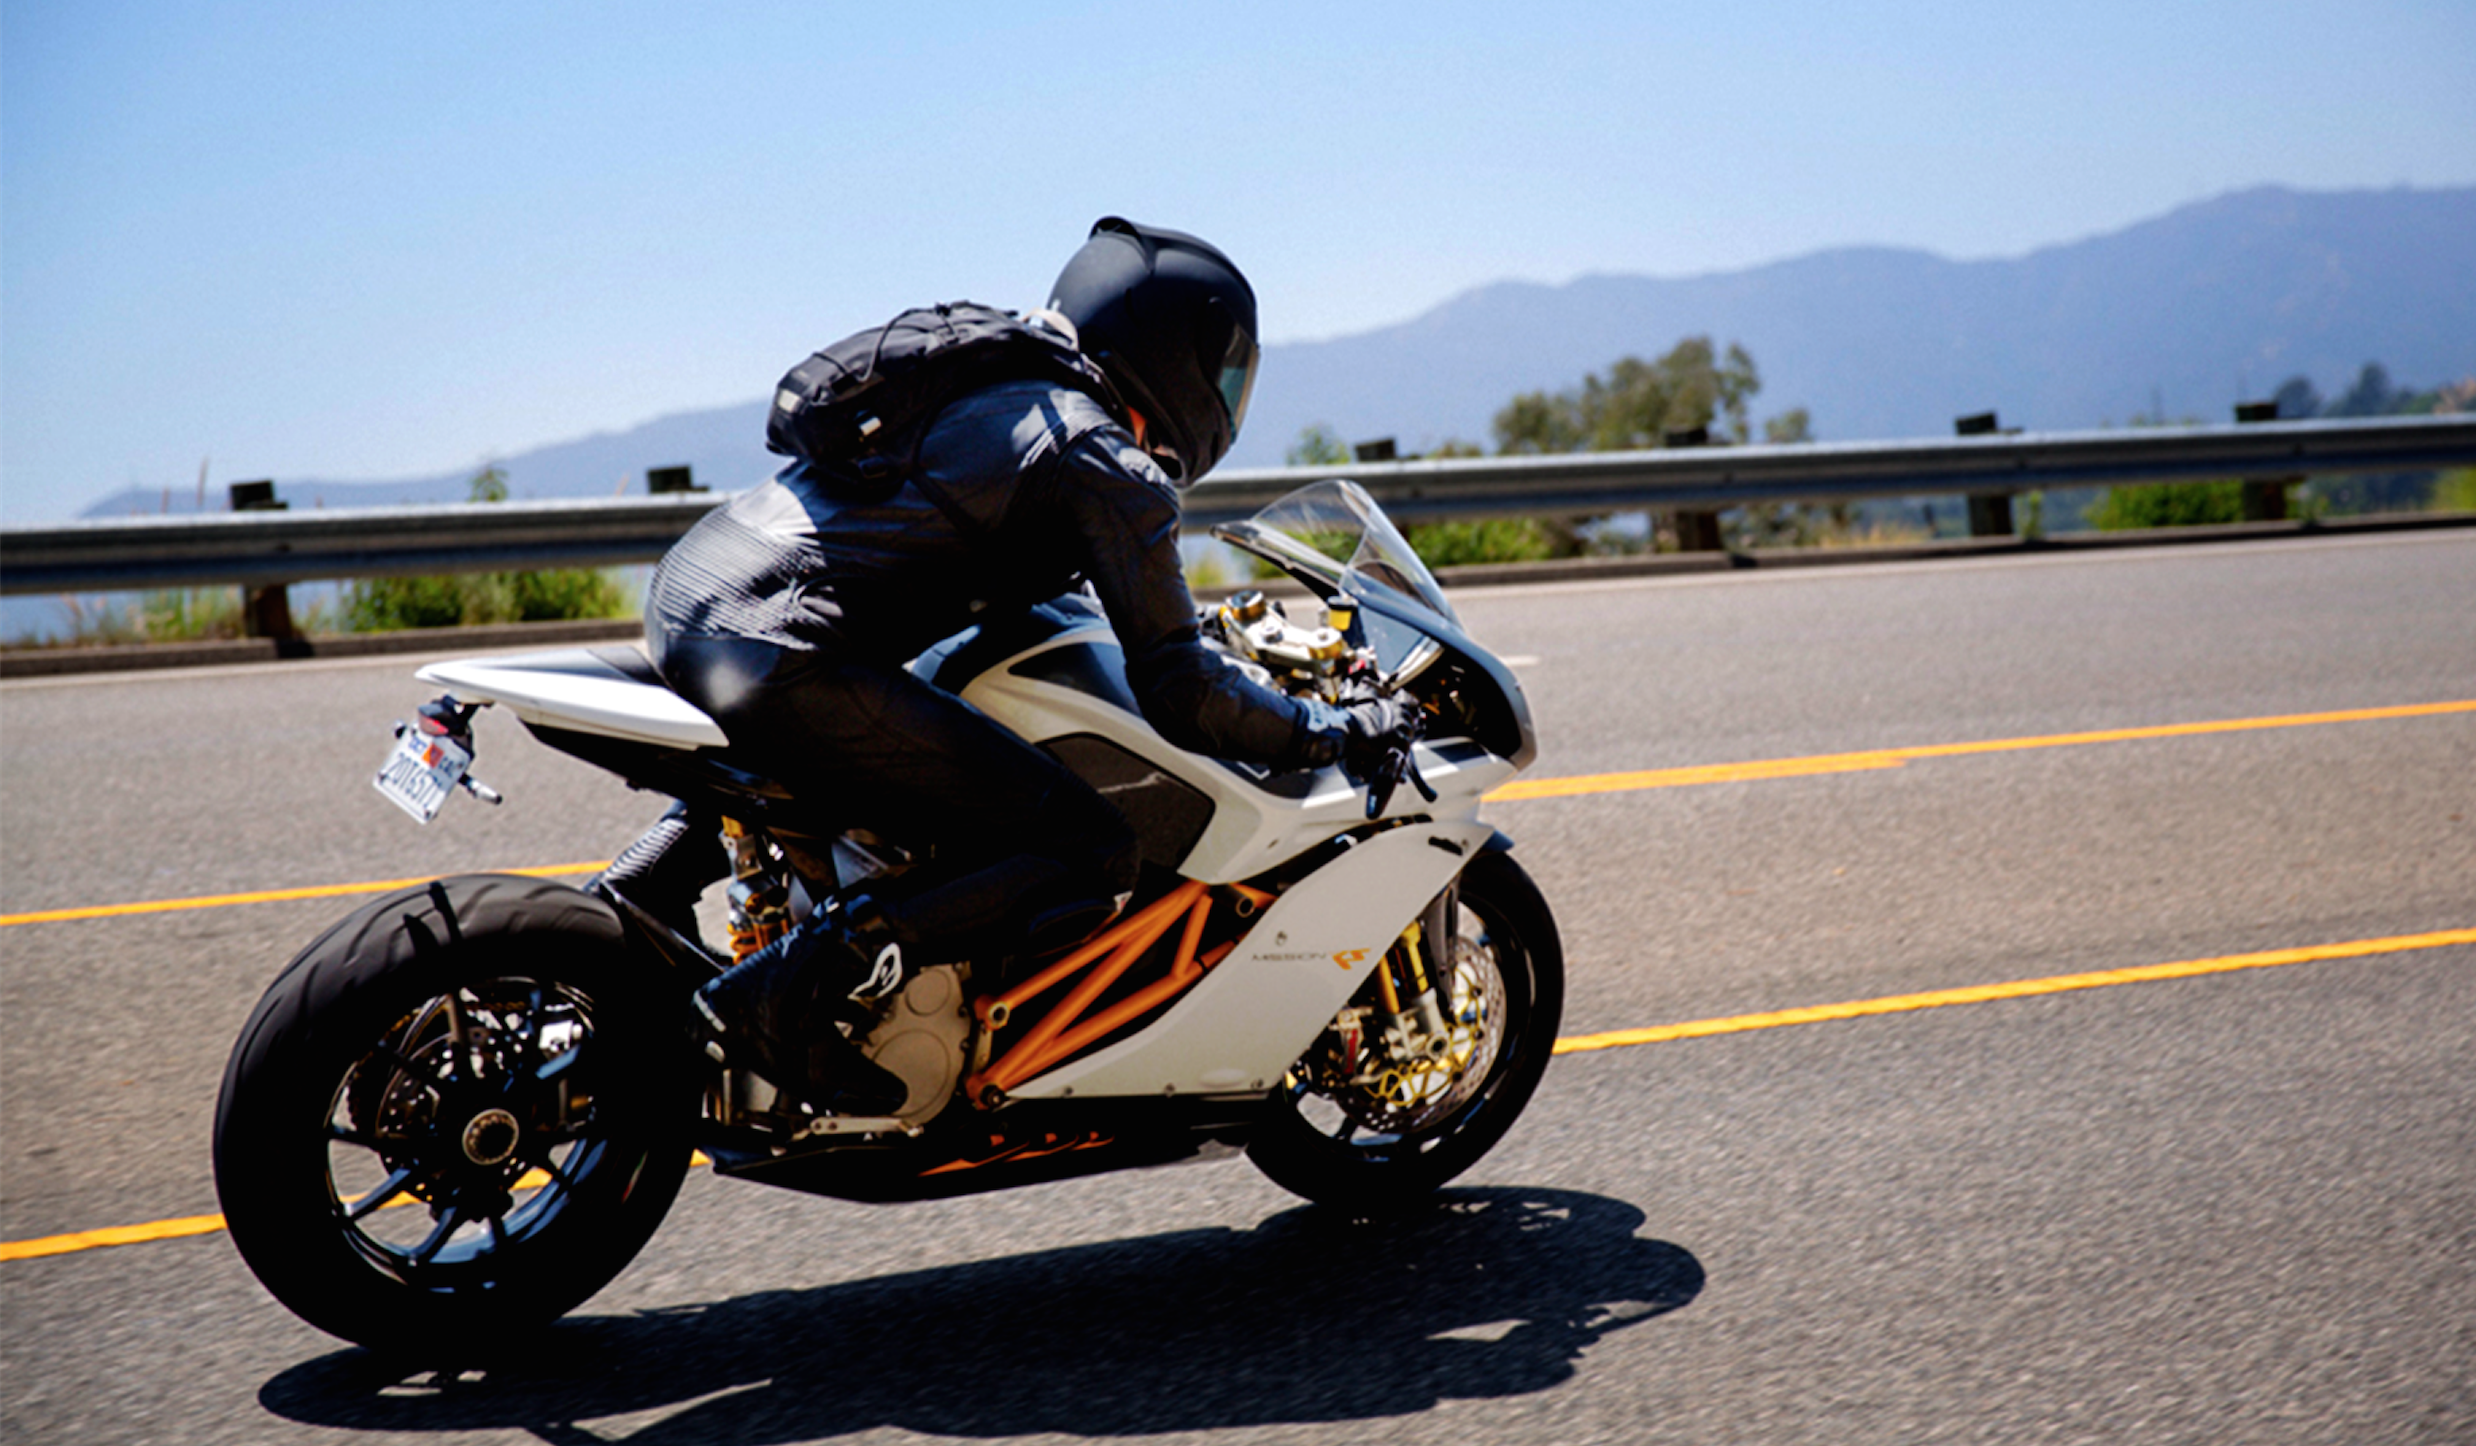 Mission Motorcycles - High-performance electric motorcycles.